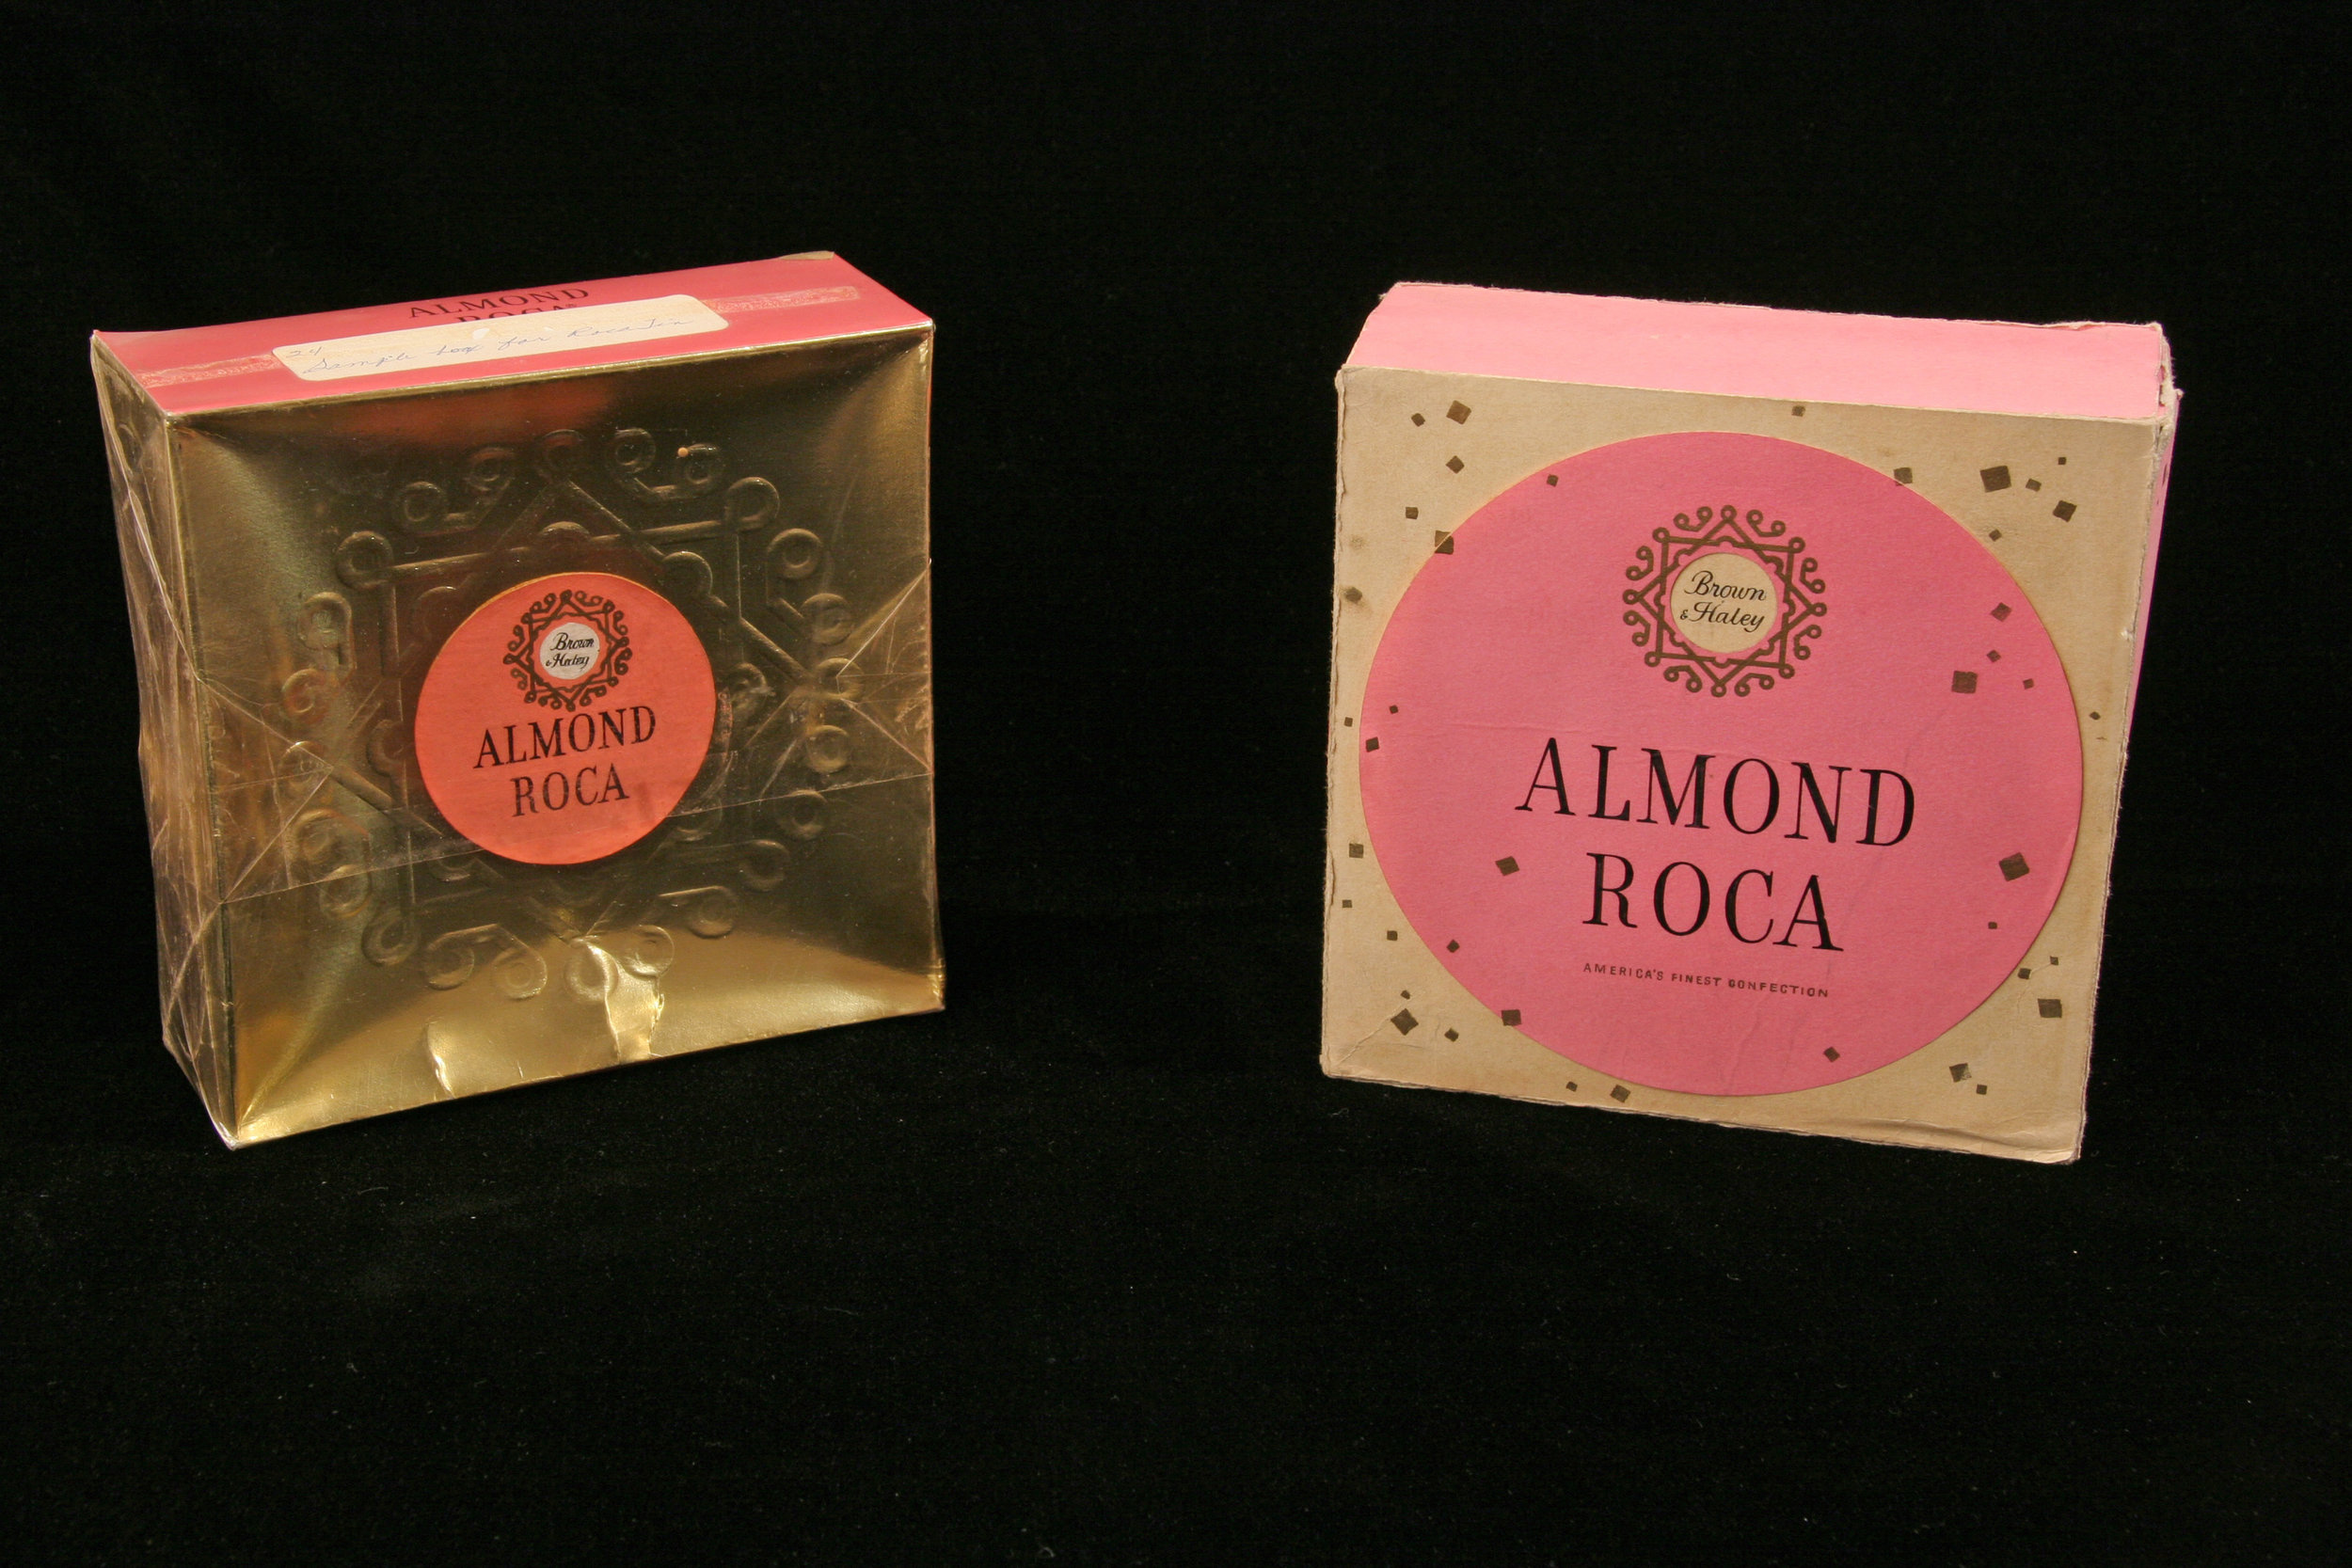 VINTAGE ALMOND ROCA PACKAGES